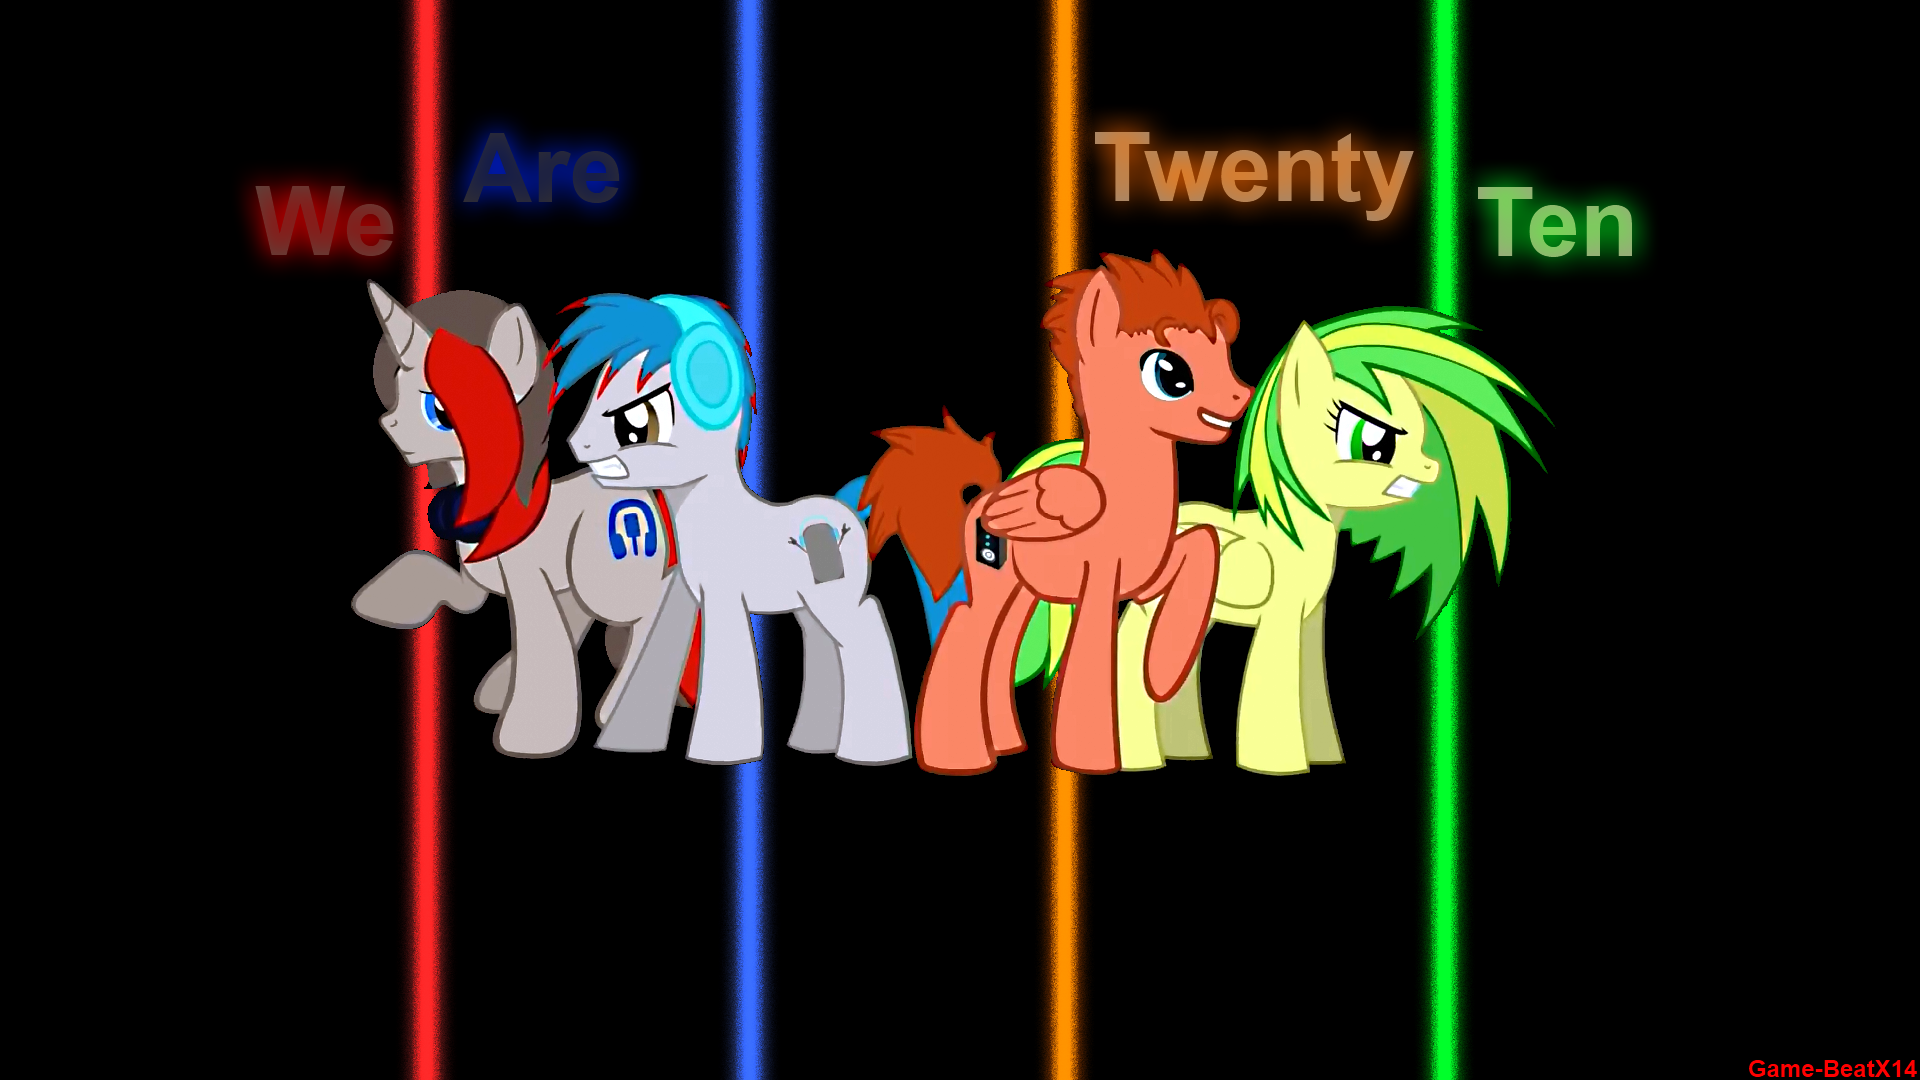 We Are Twenty Ten Wallpaper by Game-BeatX14 and MyLittleLuckyWish